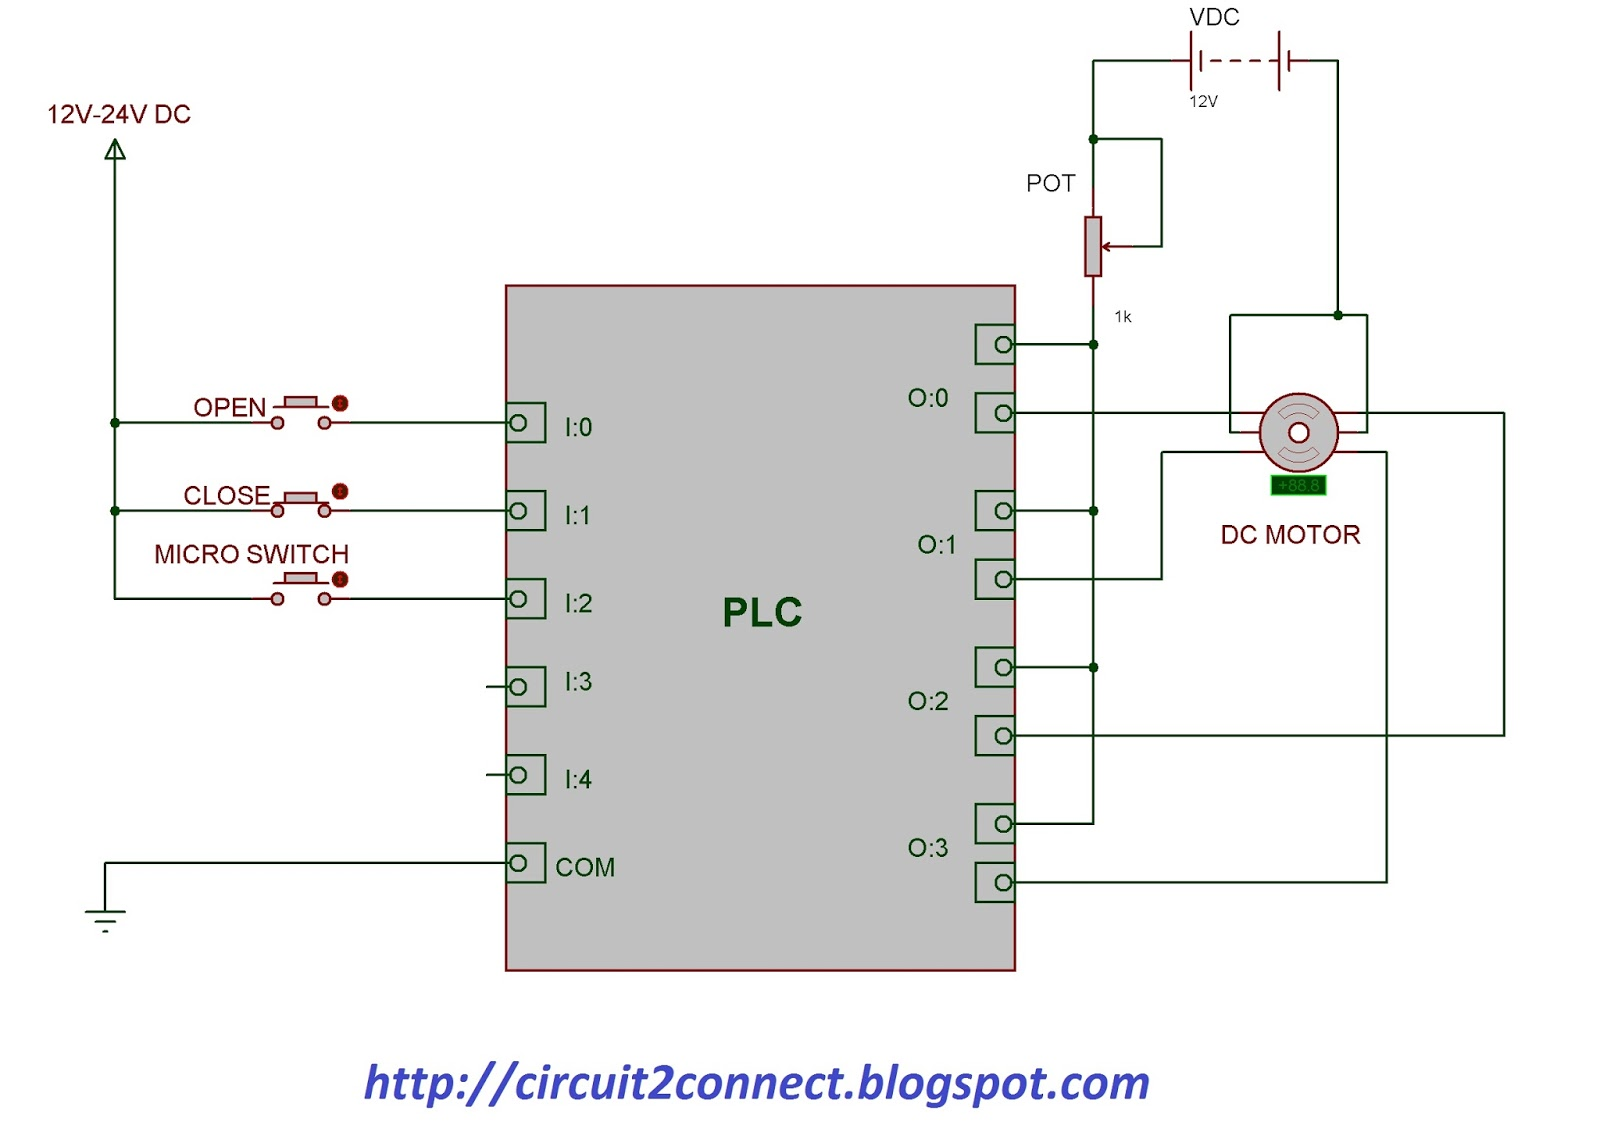 Semi-Automated Control of Tollgate Gate using PLC & DC Motor ...